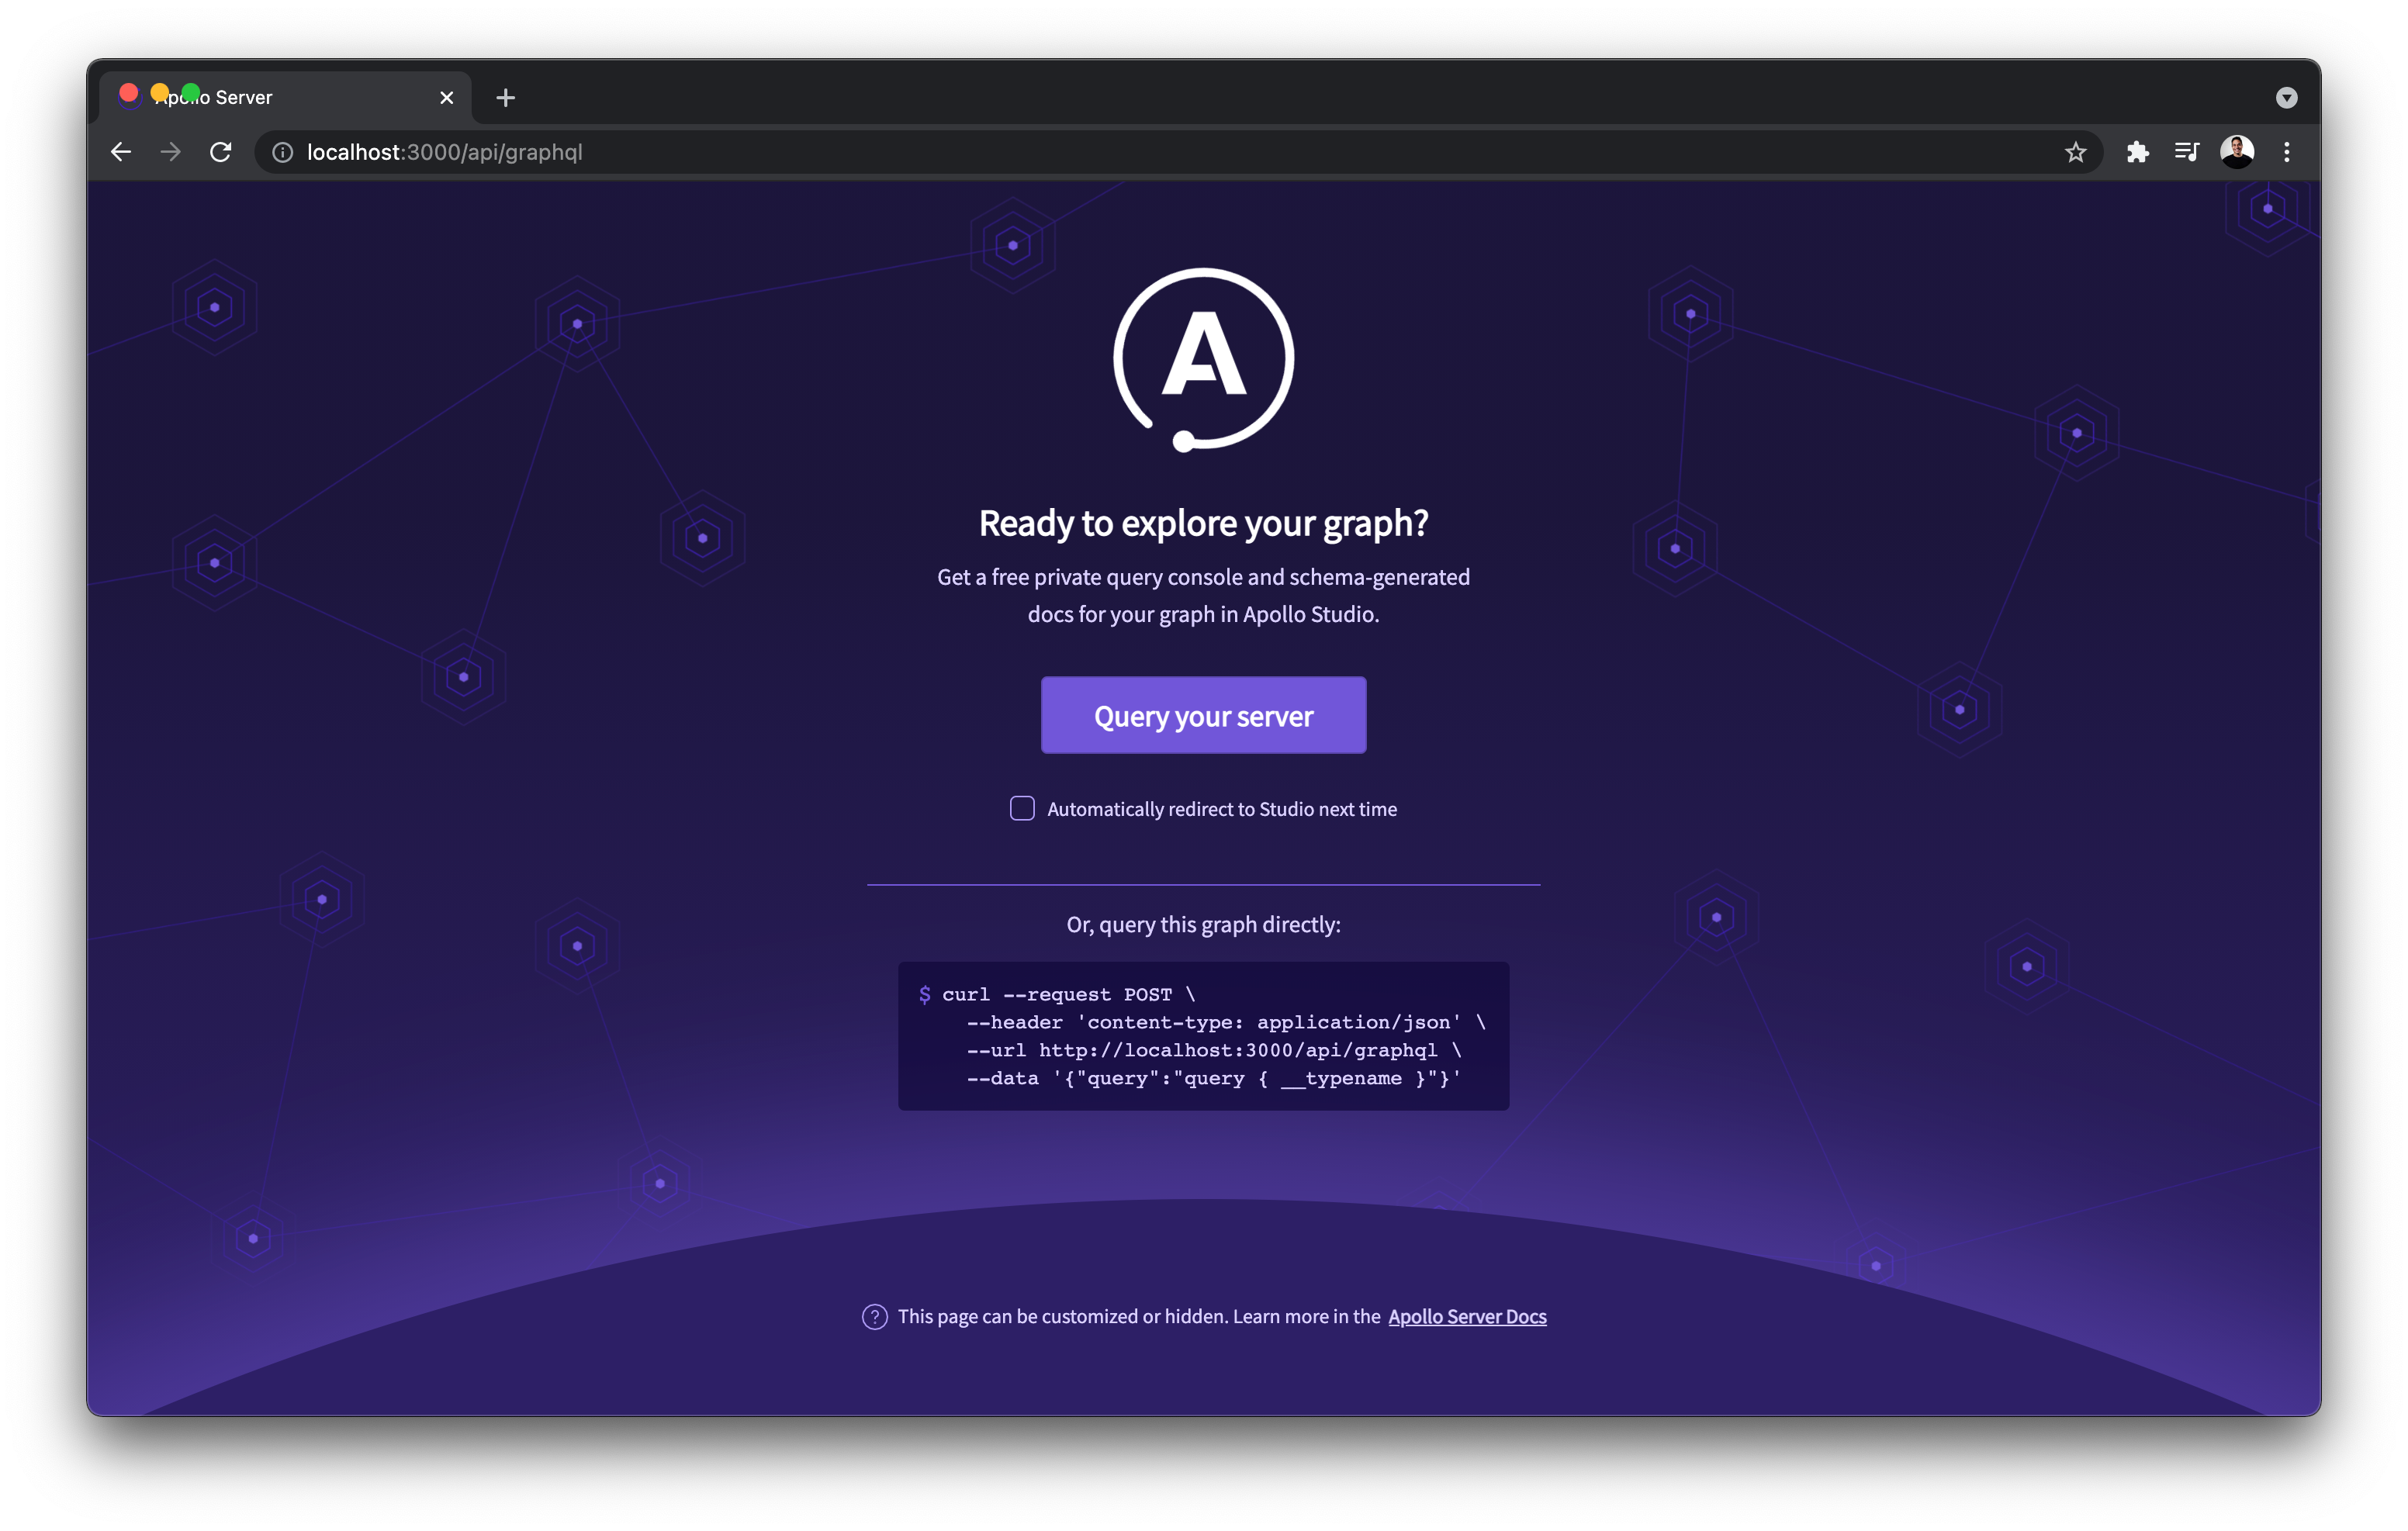 Apollo Studio asking if you are ready to start querying your Graph